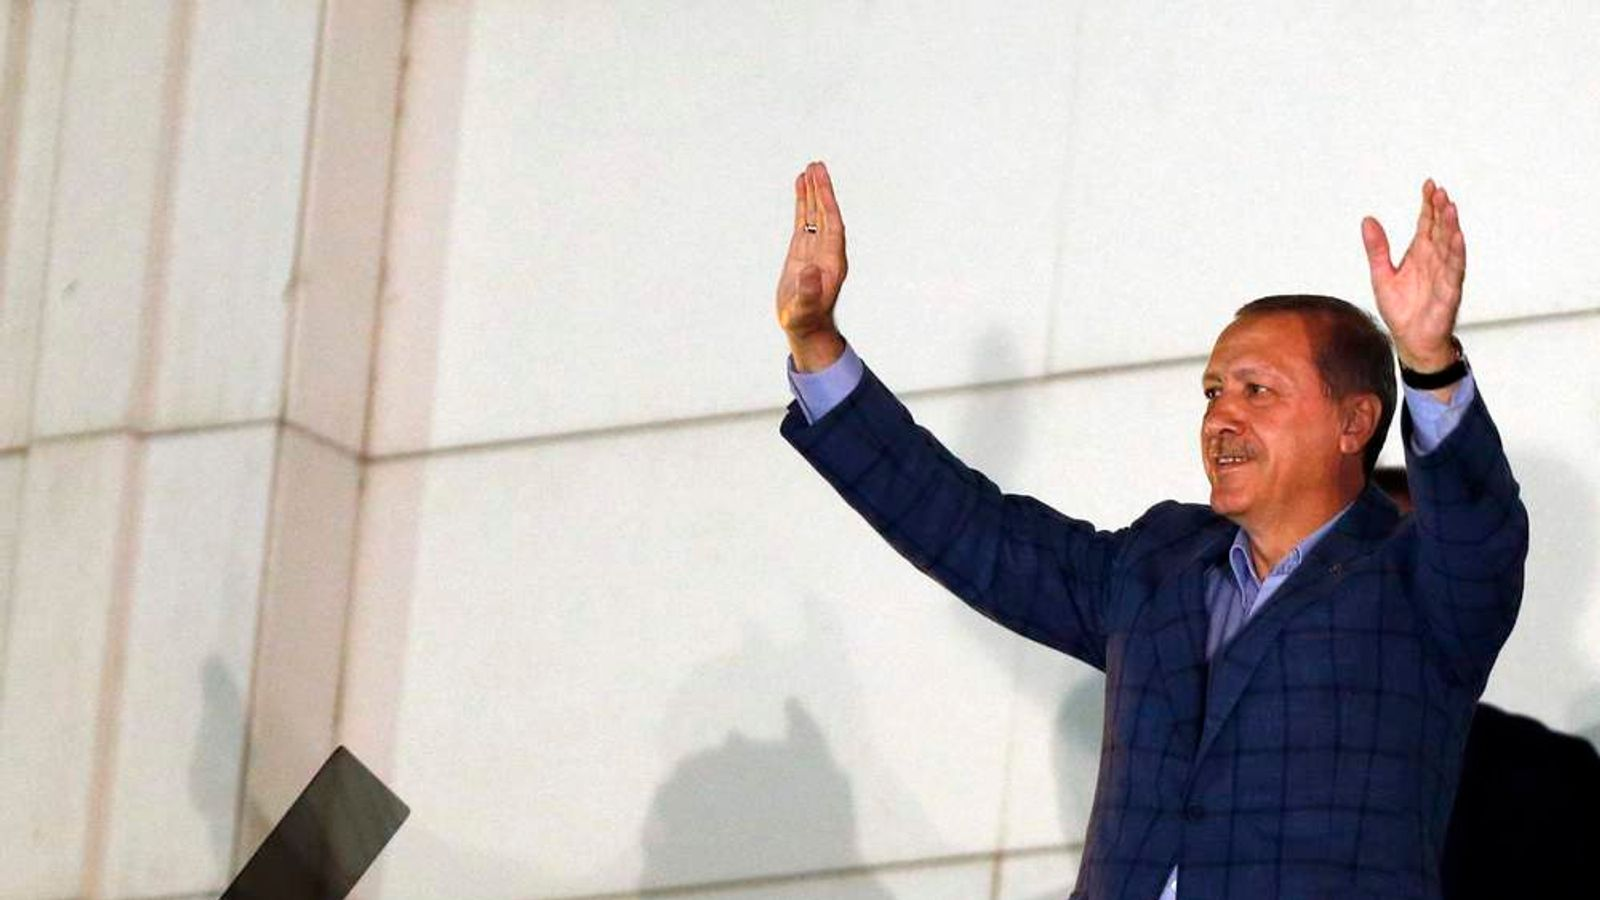 Turkey's Prime Minister Erdogan waves hands as he celebrates his election victory in front of the party headquarters in Ankara